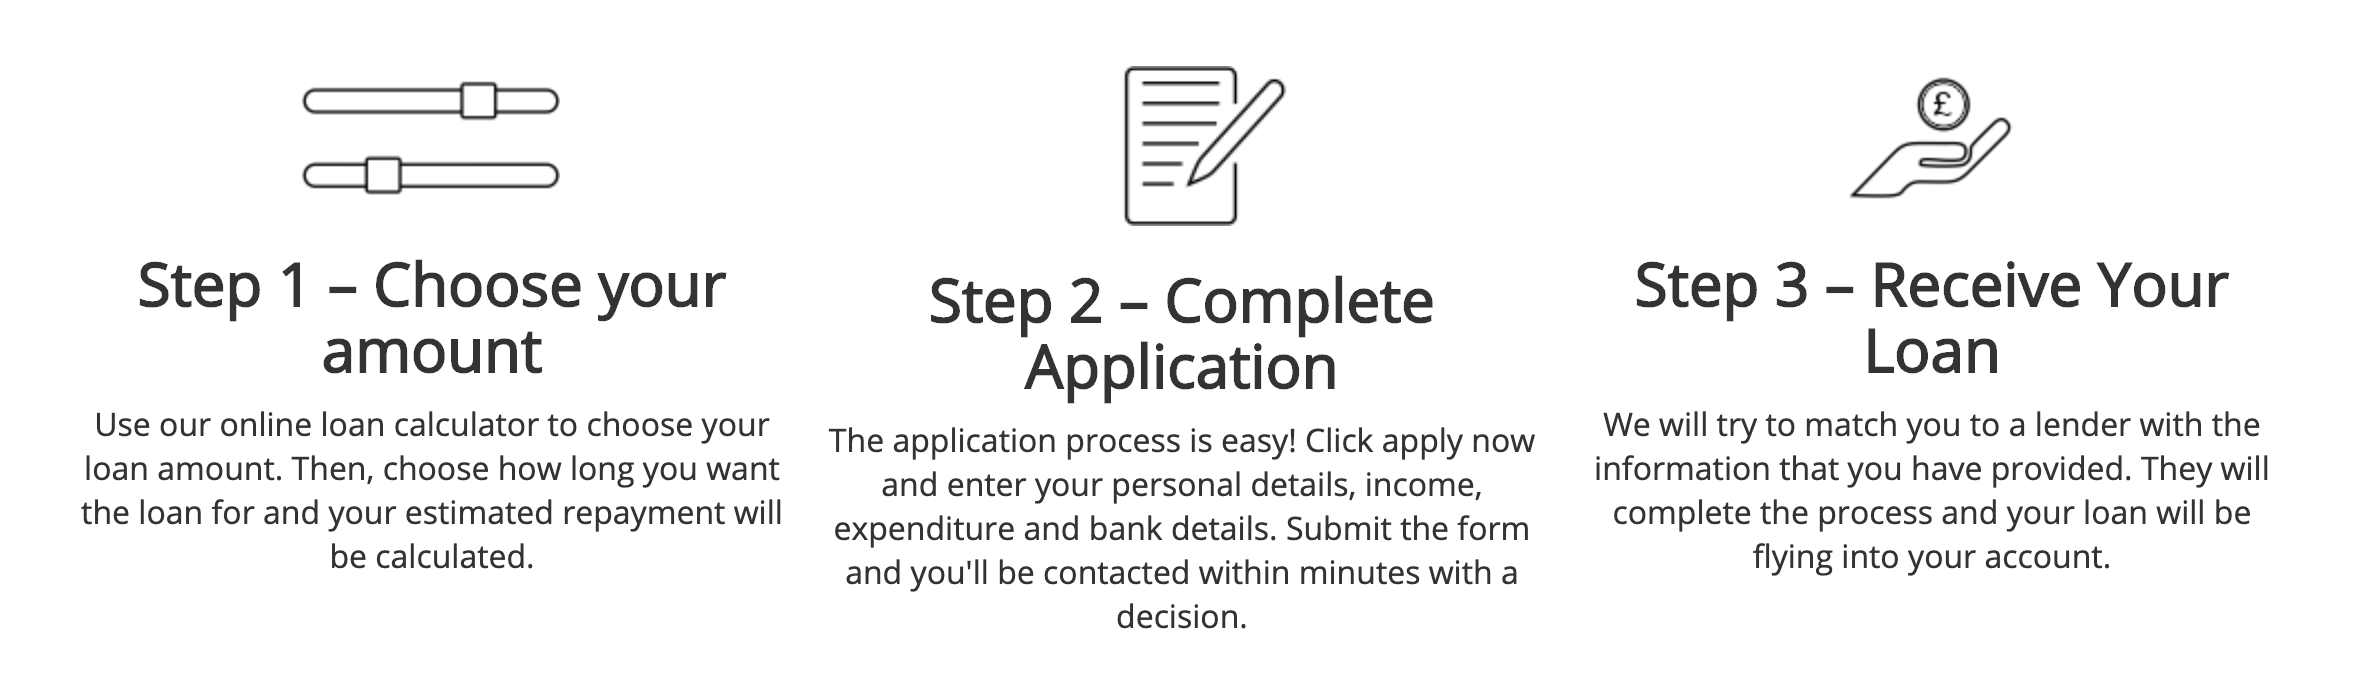 PM Loans Application Process